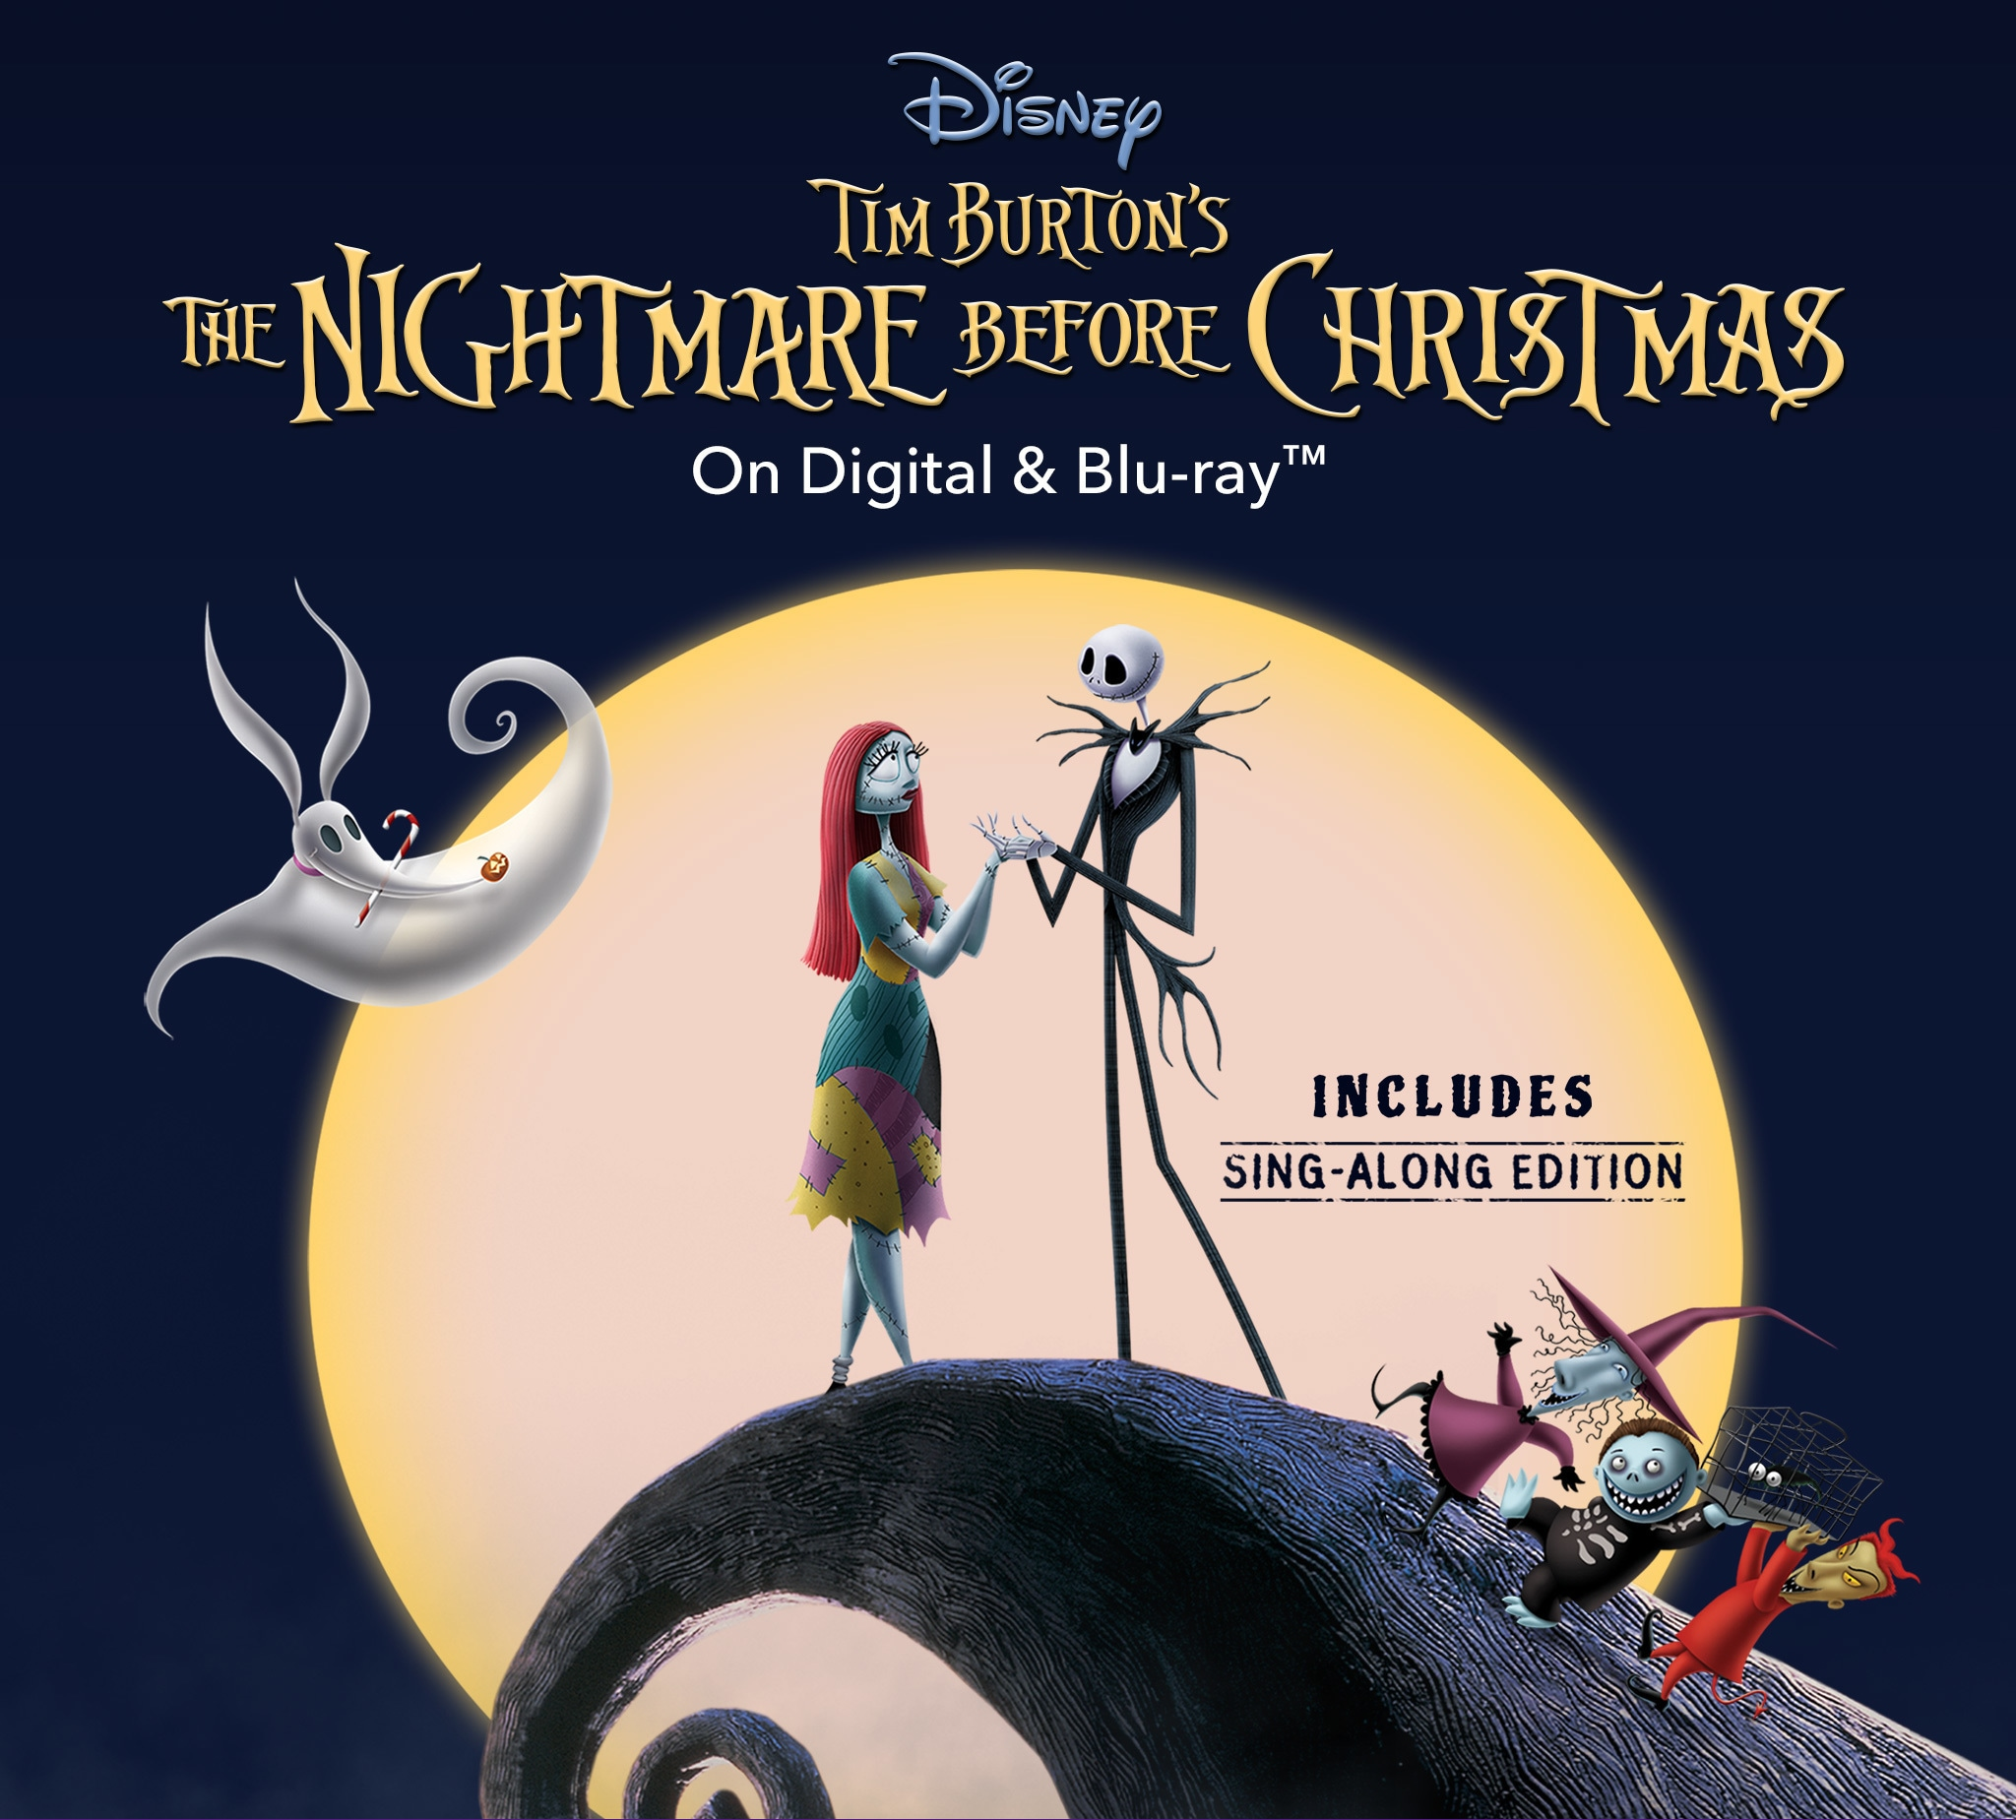 The Nightmare Before Christmas - On Digital And Blu-ray(TM) - Includes Sing-Along Edition